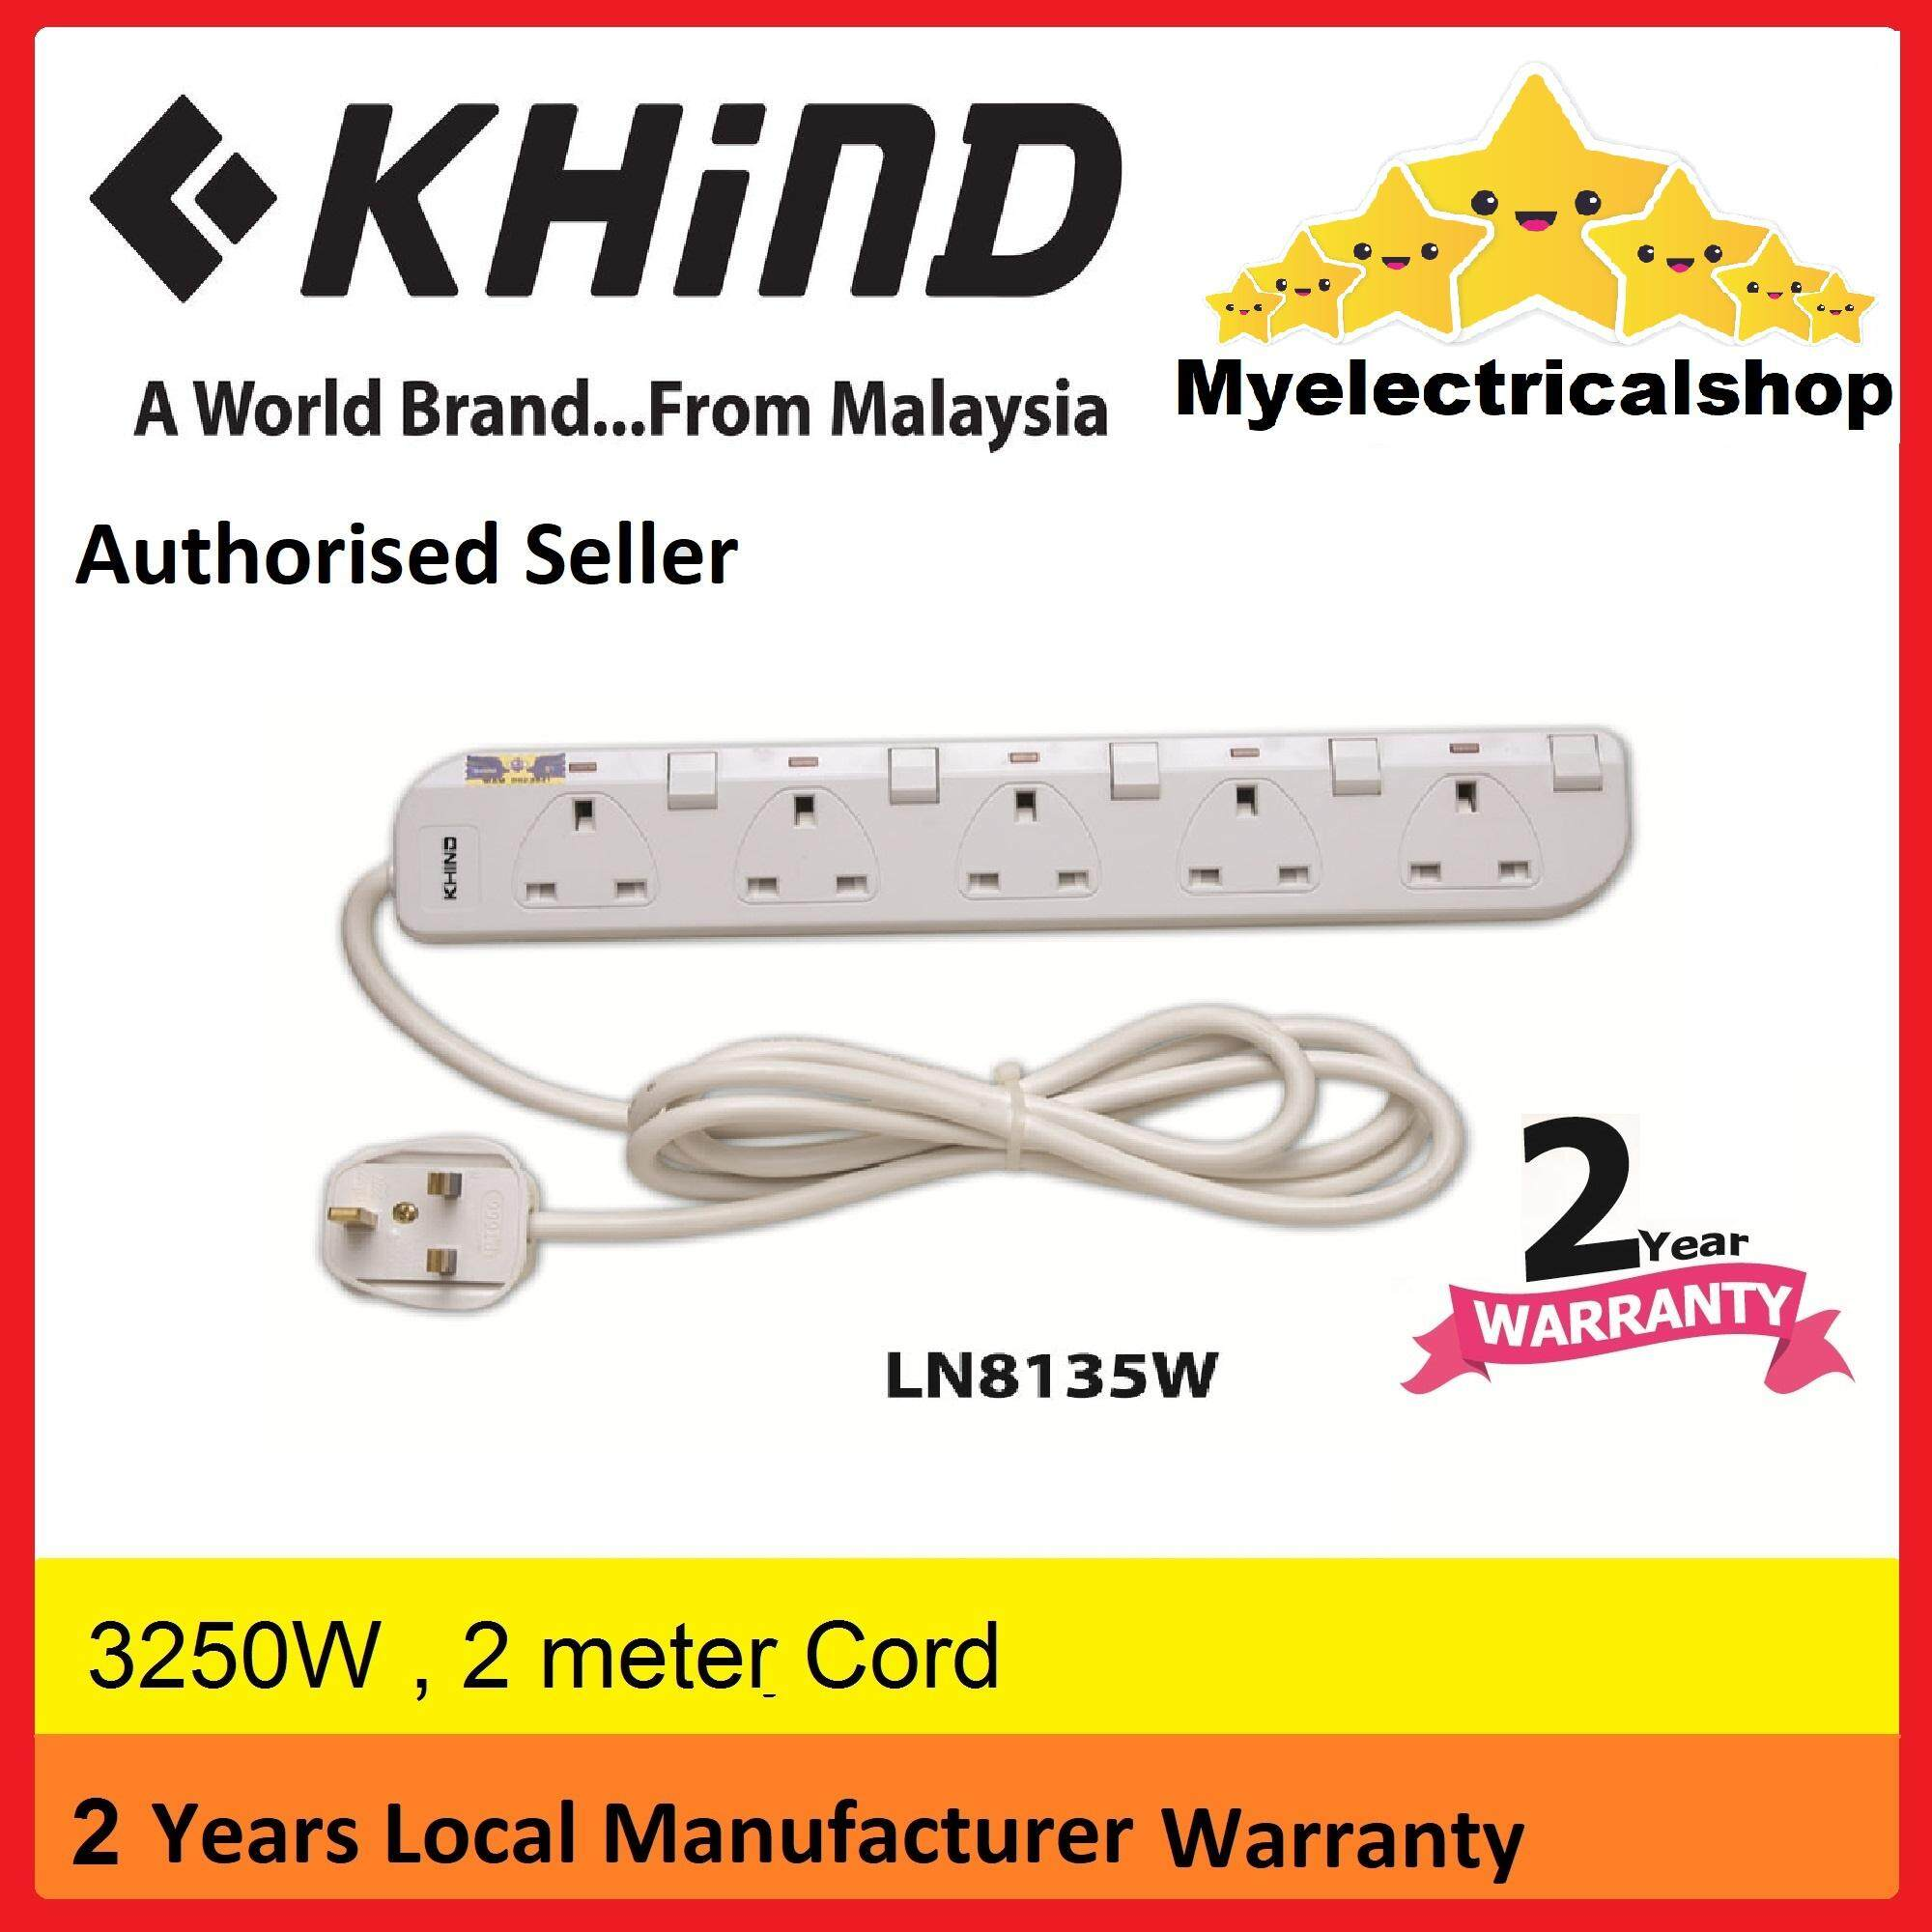 Home Electrical Buy At Best Price In Malaysia Power Cord And Plug Labeled Diagram Khind 5 Way Gang Trailing Socket Extension Ln8135w Myelectricalshop